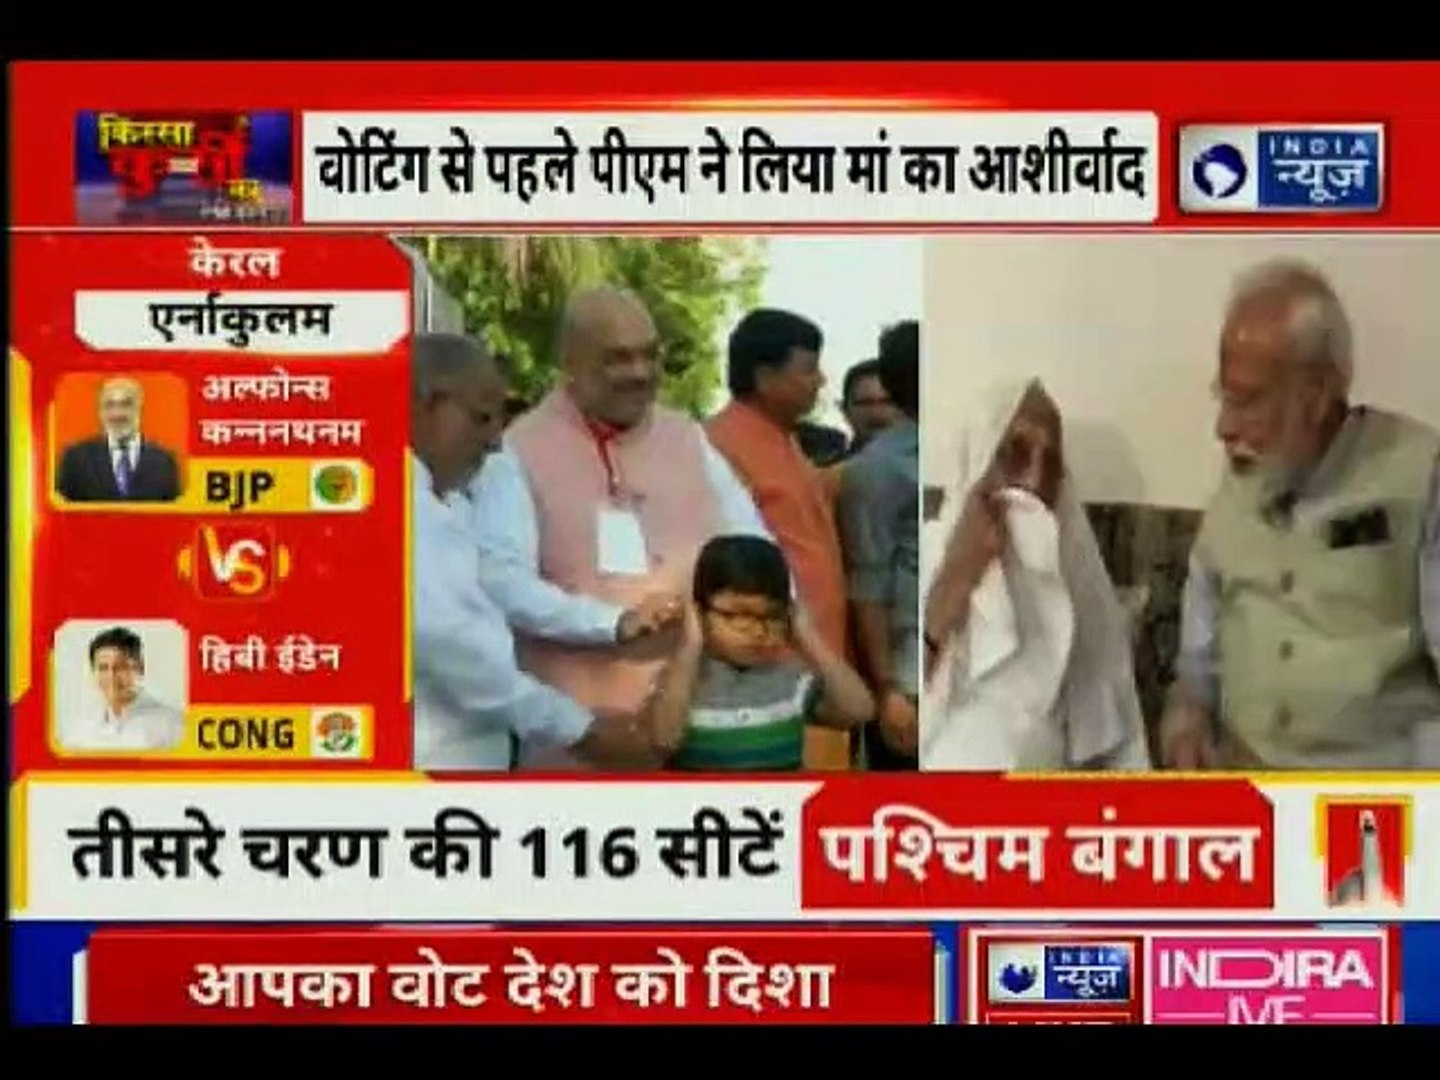 Election 2019 round 3 voting PM Narendra Modi, seeks blessings from his mother Heeraben Modi